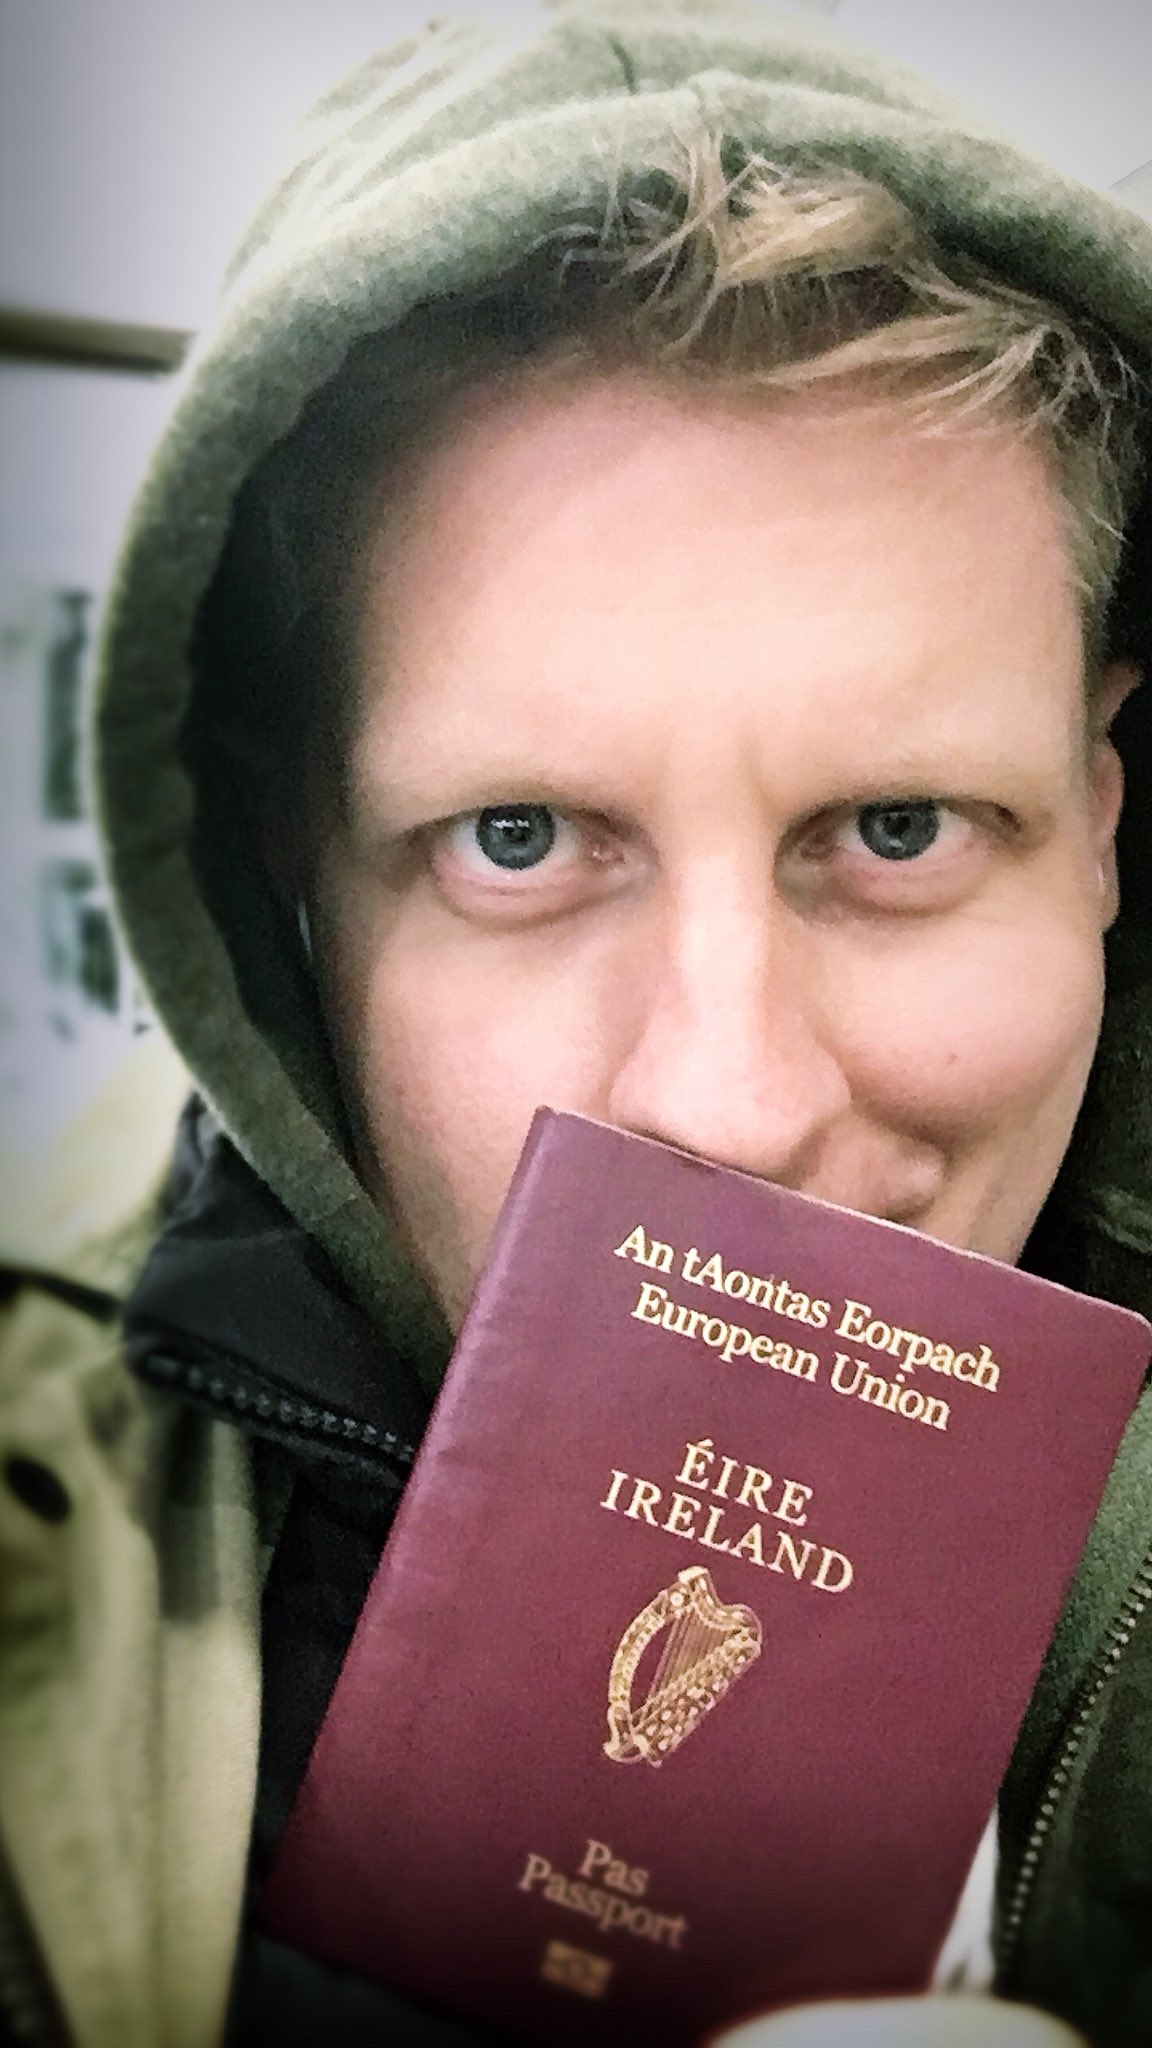 At the airport, just about to use my beautiful red passport....   Au revoir, London! X https://t.co/zC9kO5Arkw